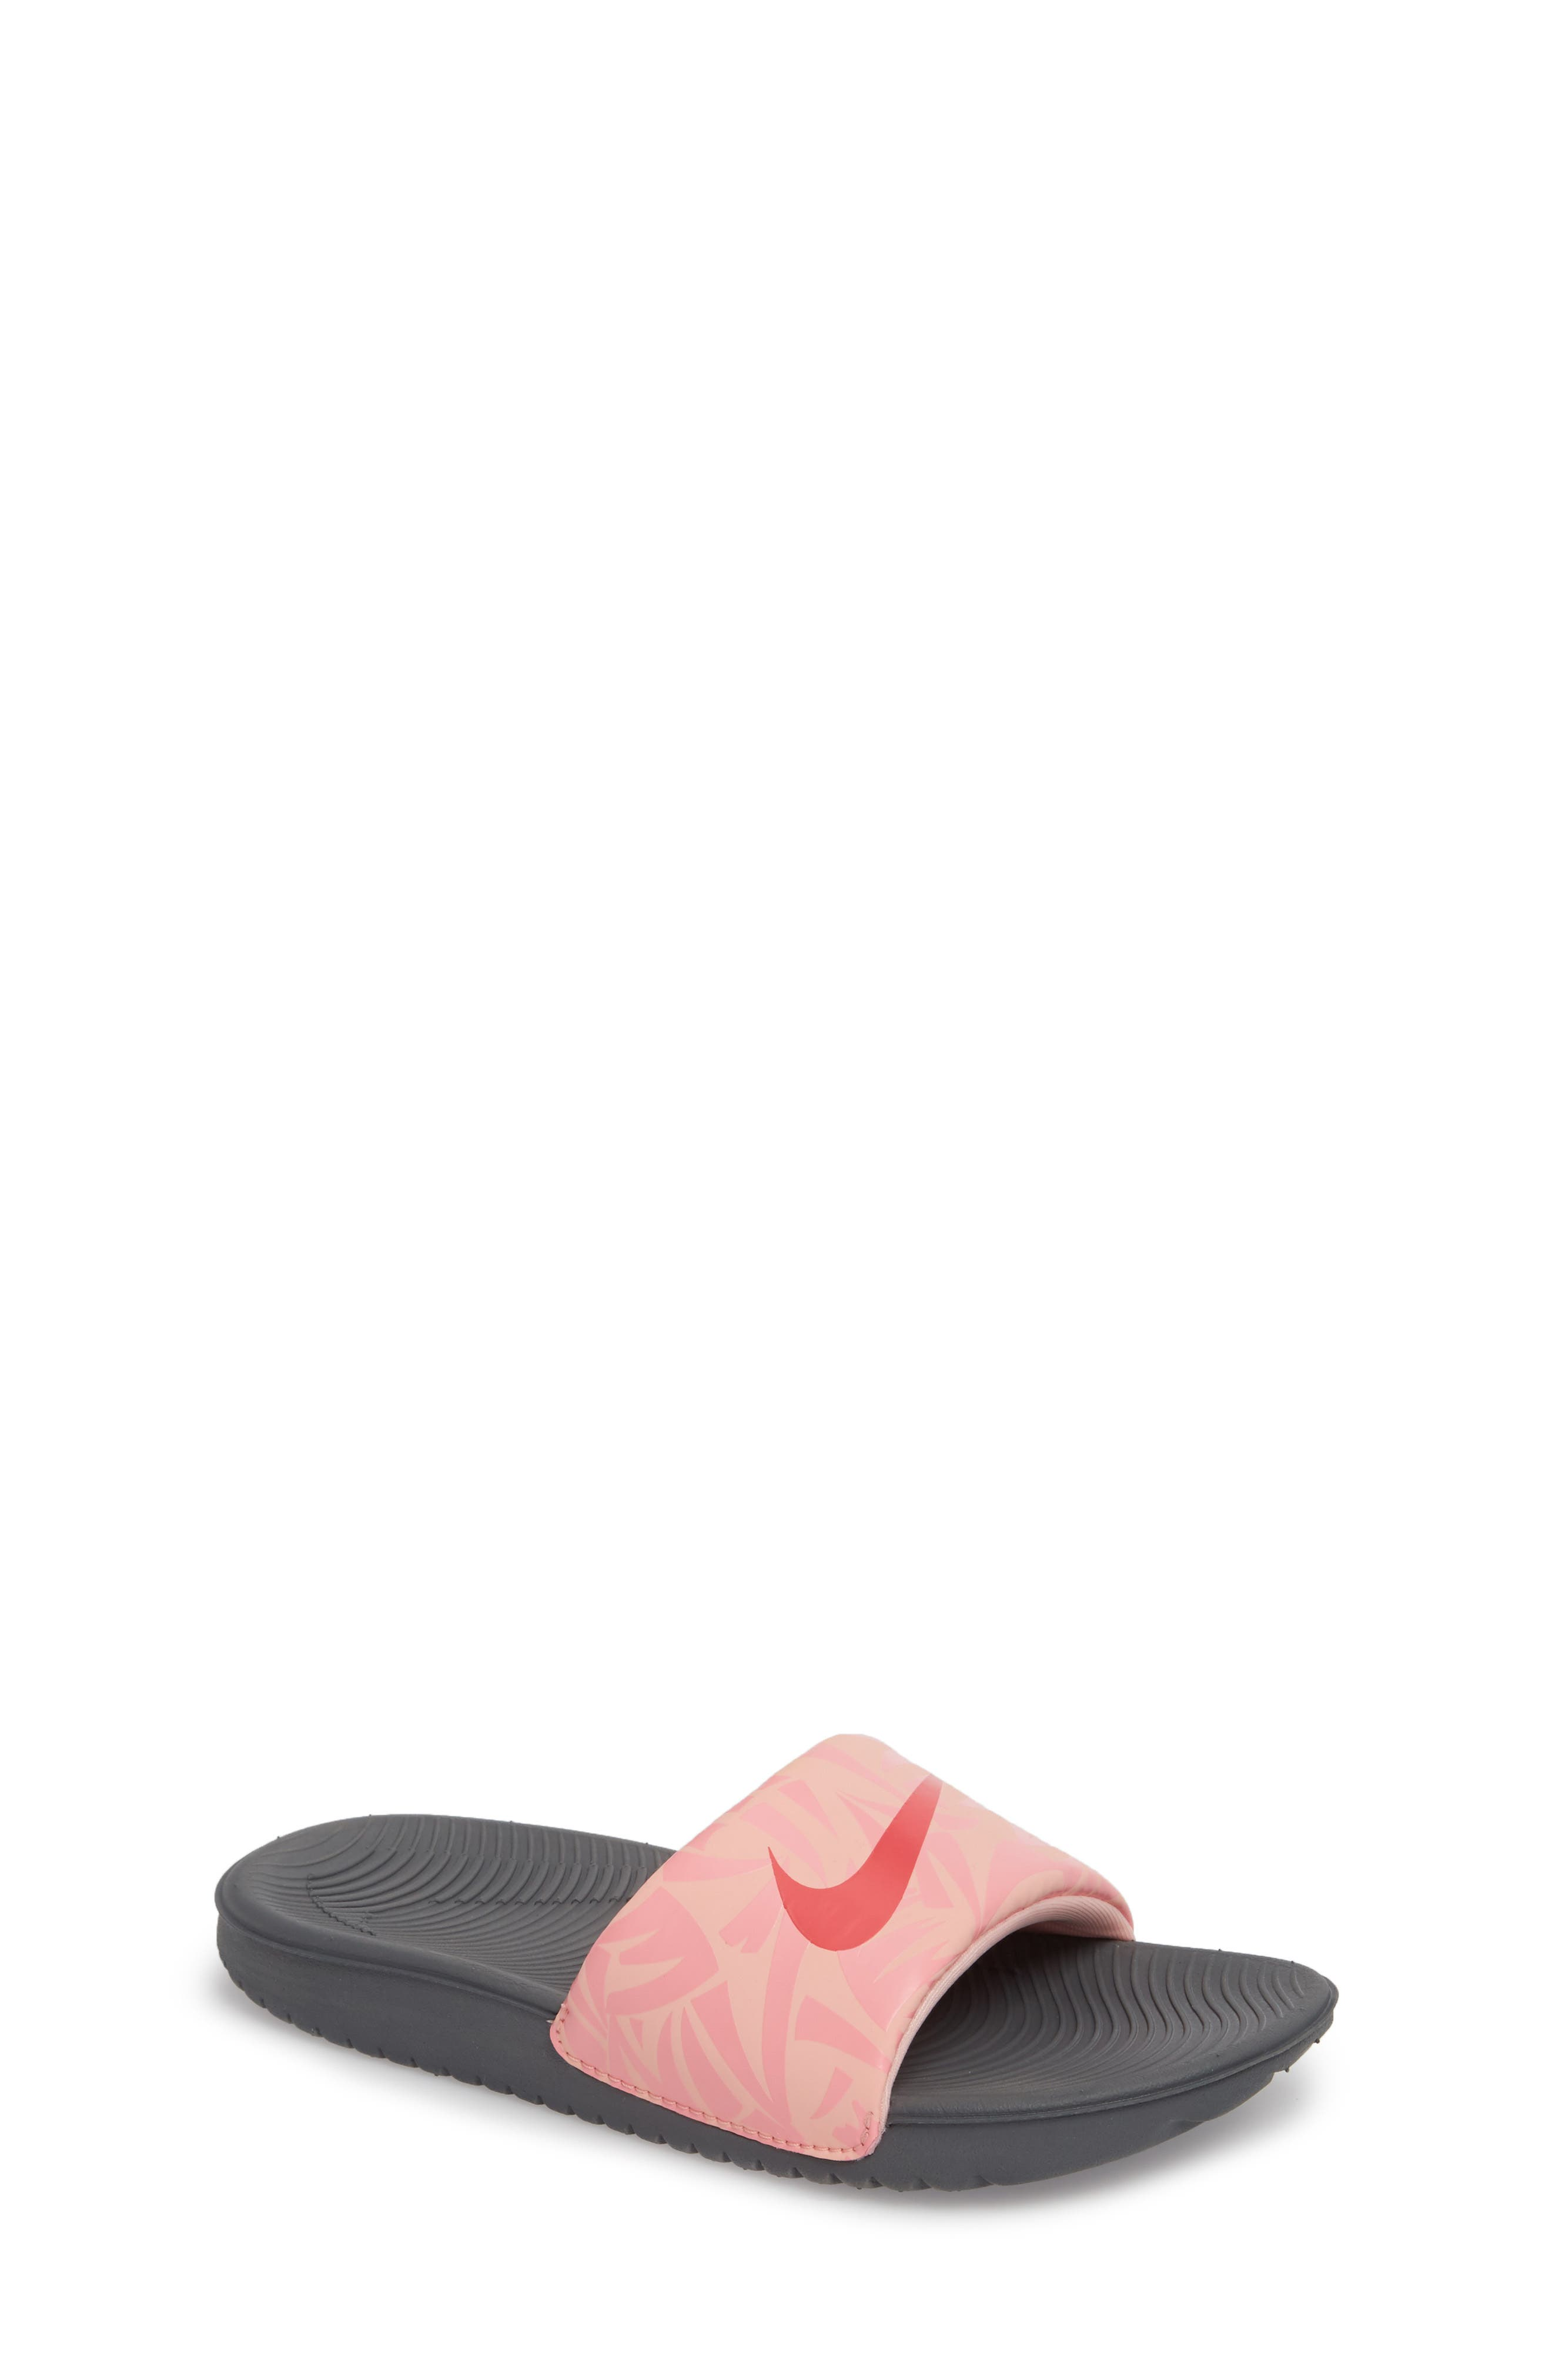 'Kawa' Print Slide Sandal,                             Main thumbnail 1, color,                             020